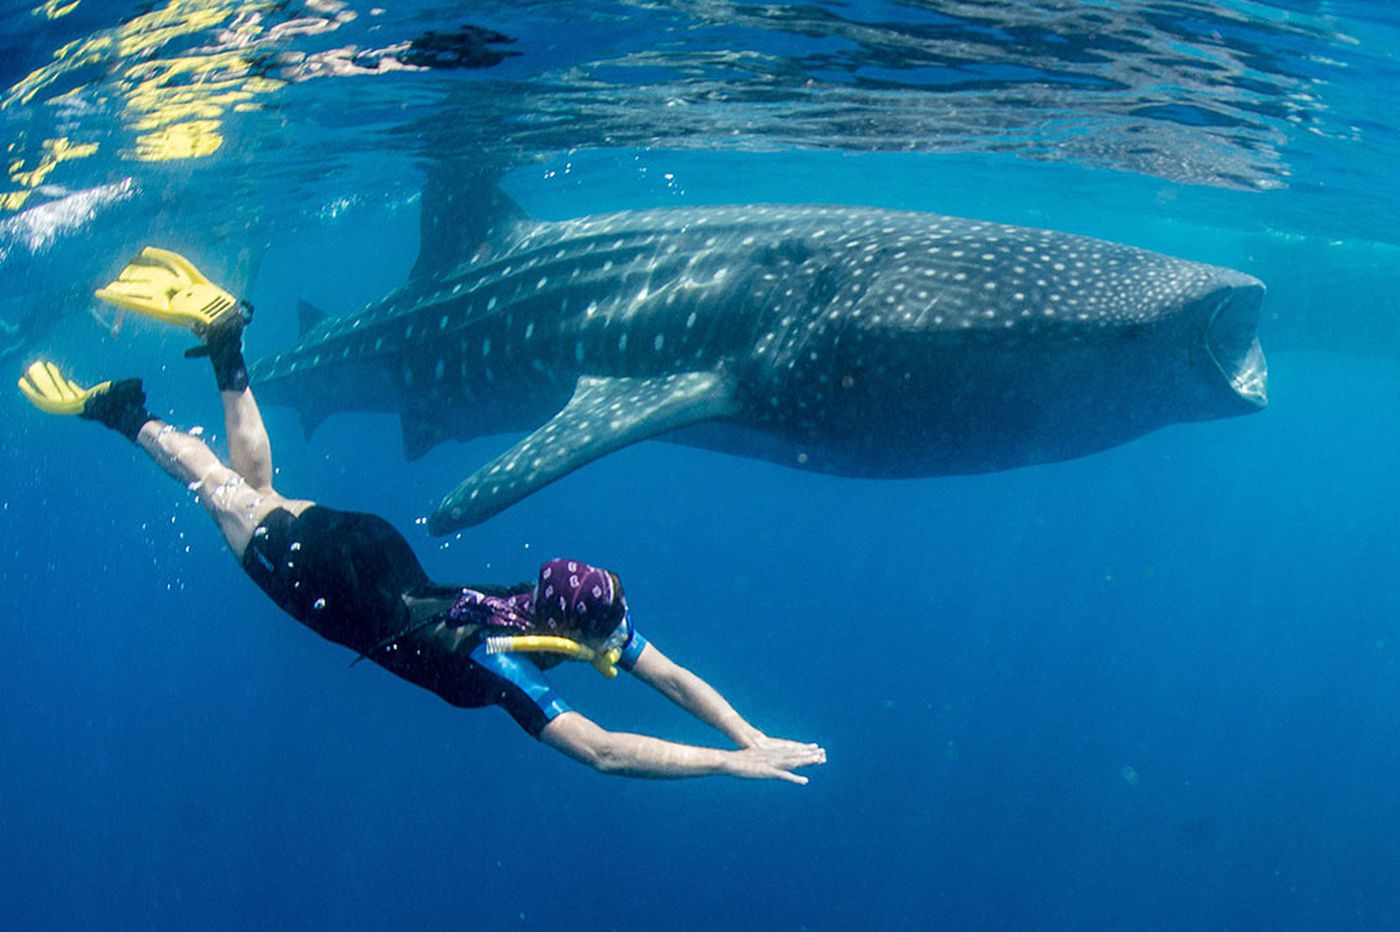 Off the Yucatan, too-close encounters with whale sharks